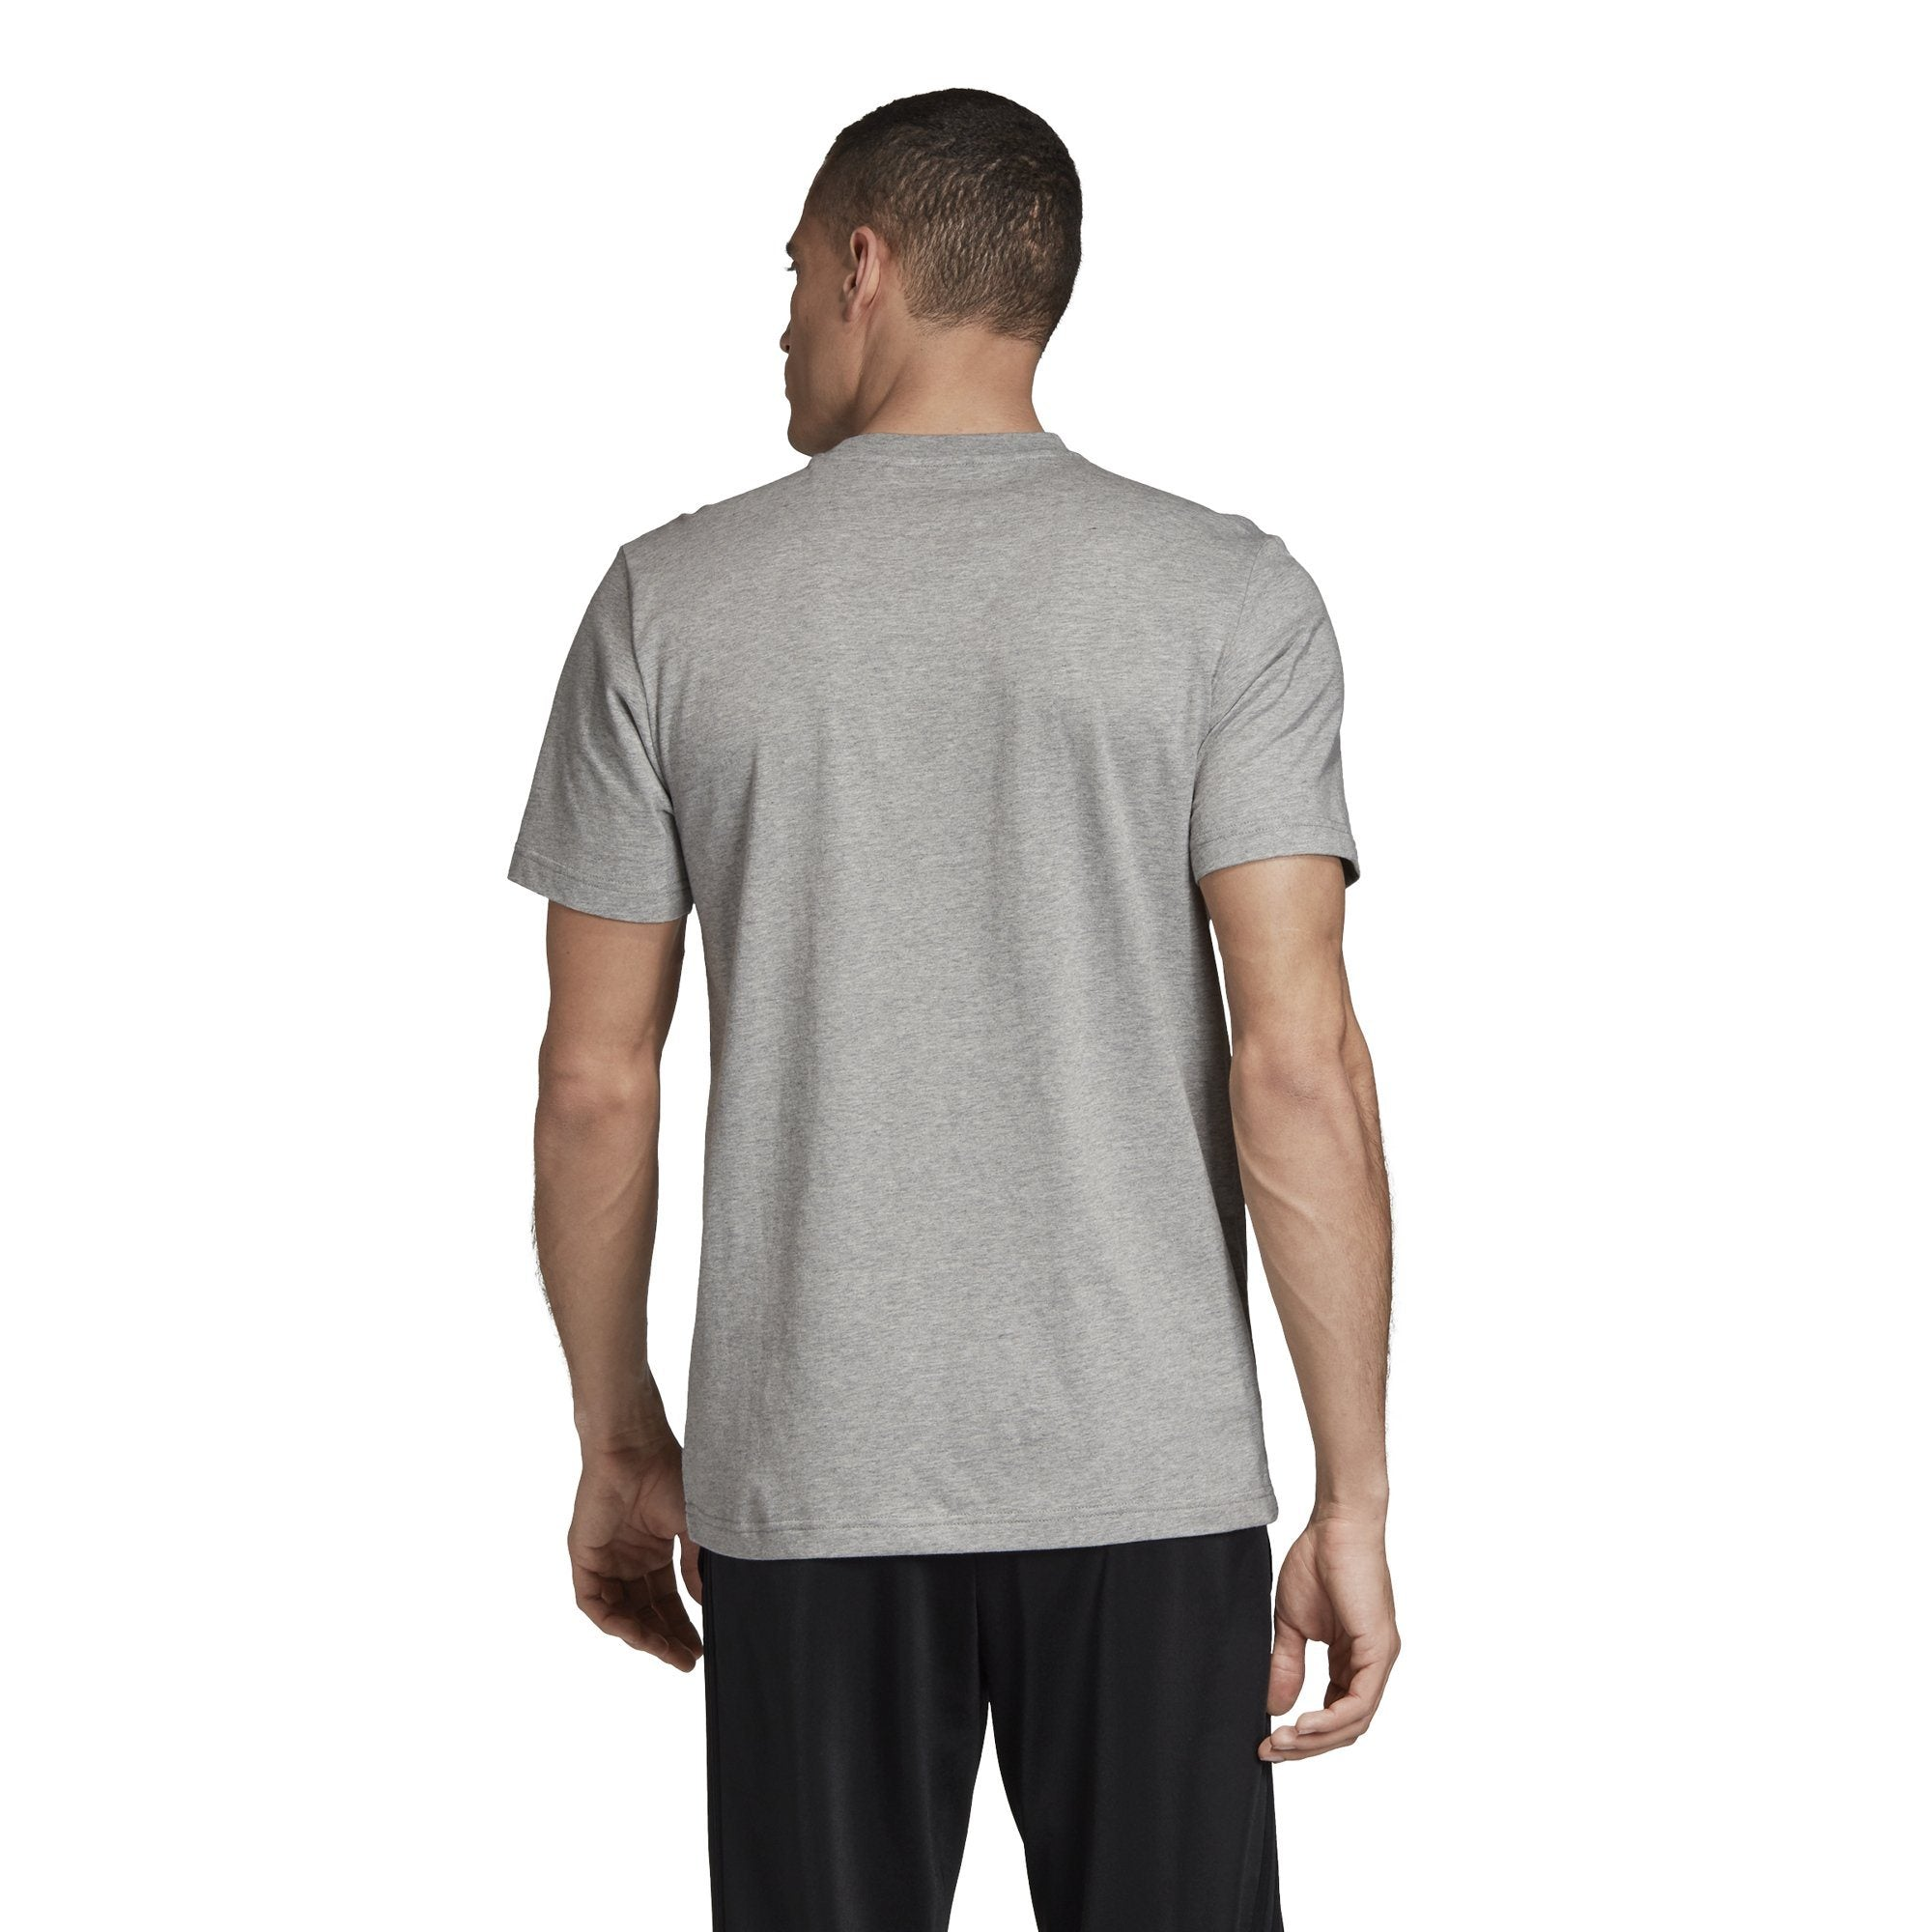 Adidas Mens Box Graphic Tee - medium grey heather/black SP-APPARELTEES-MENS Adidas